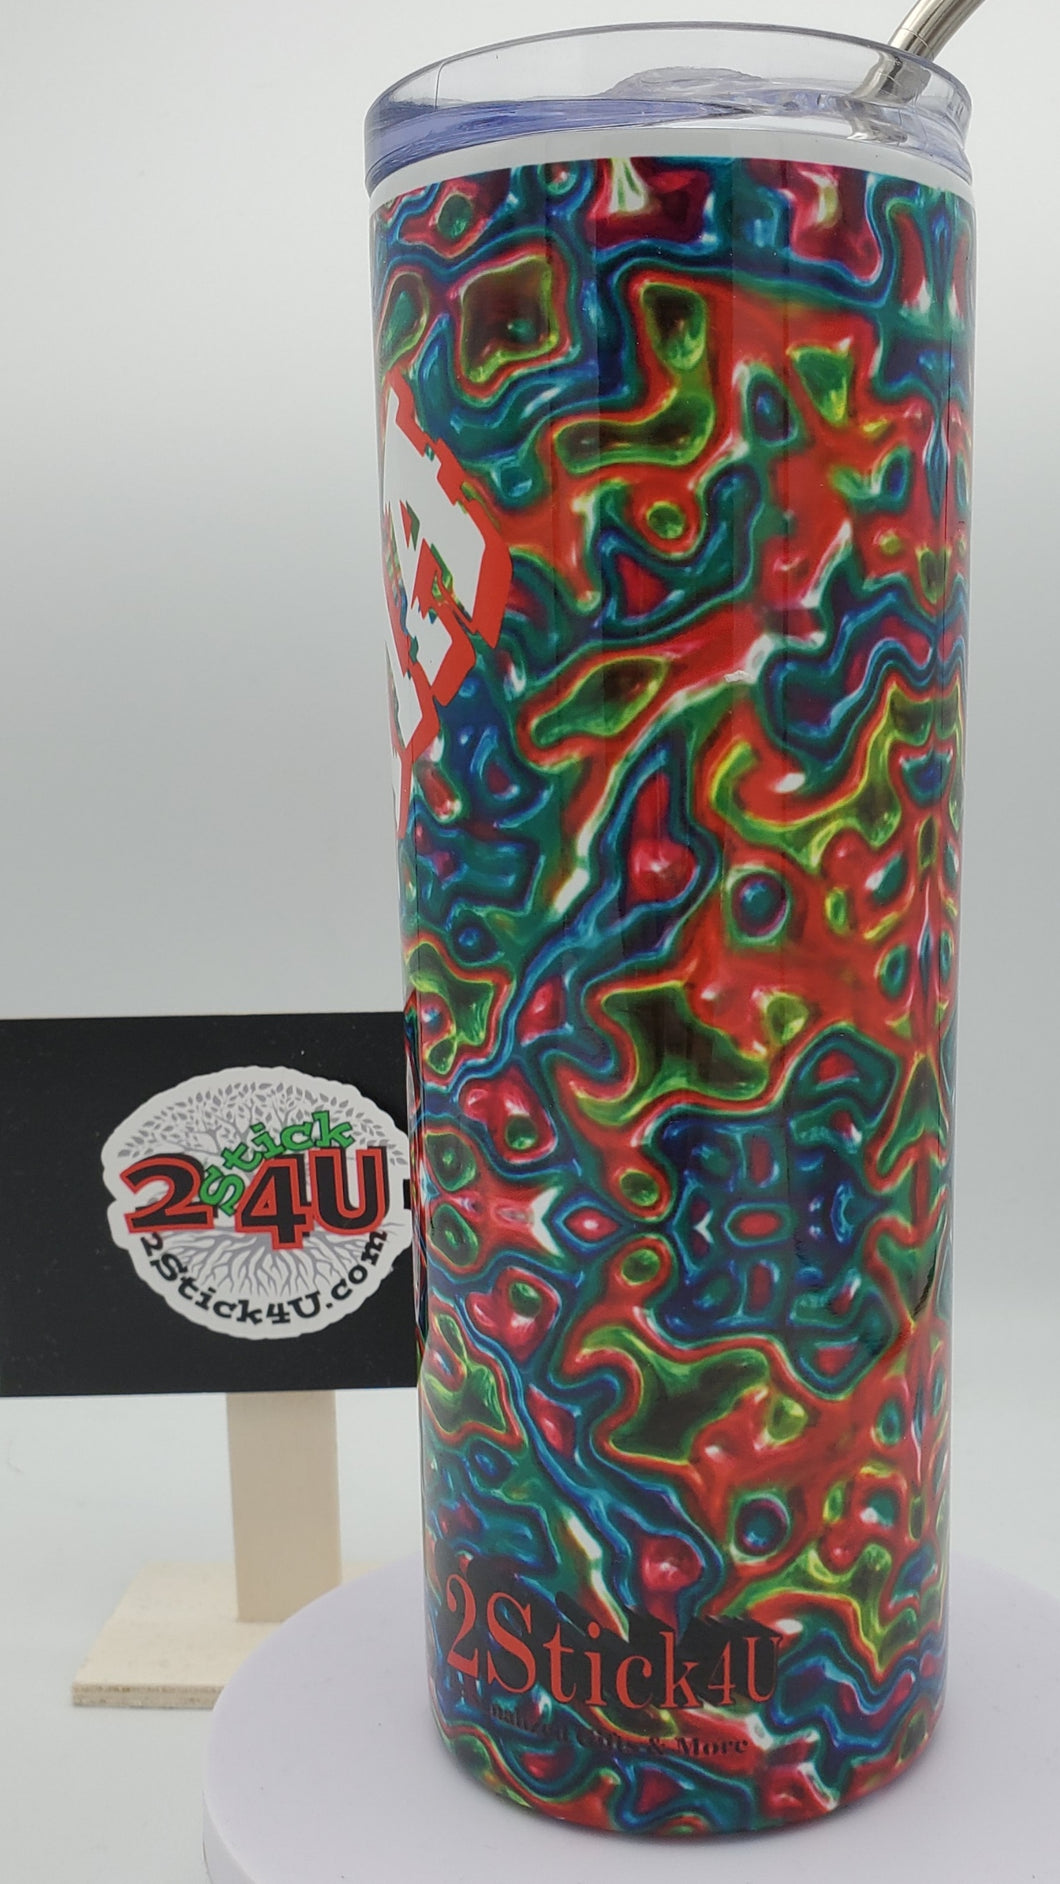 Oil Slick No. 4 20 Ounce Stainless Steel Tumbler